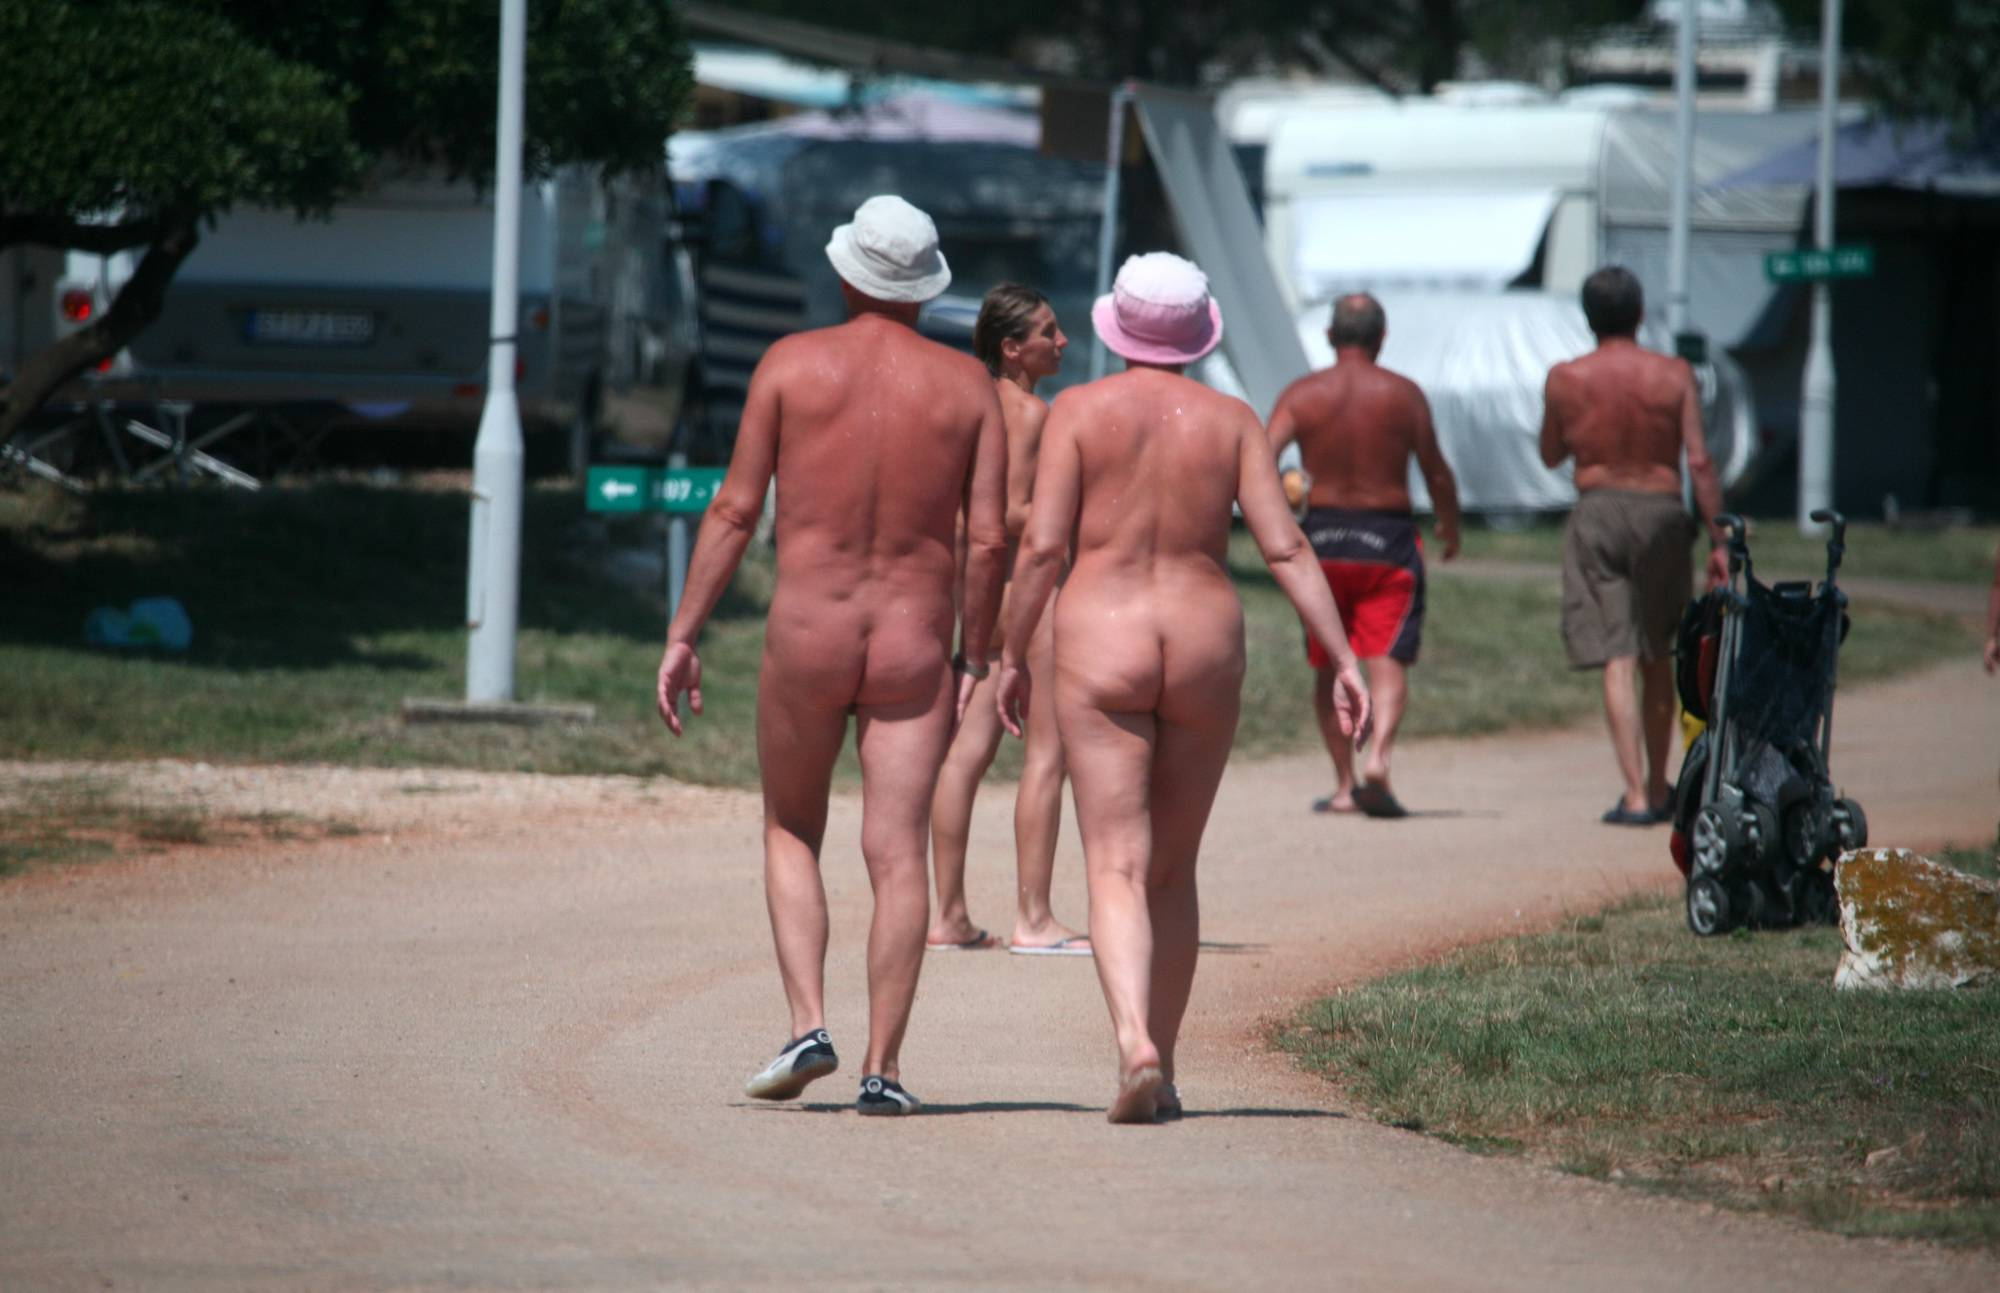 Packup and Nudists Leaving - 1